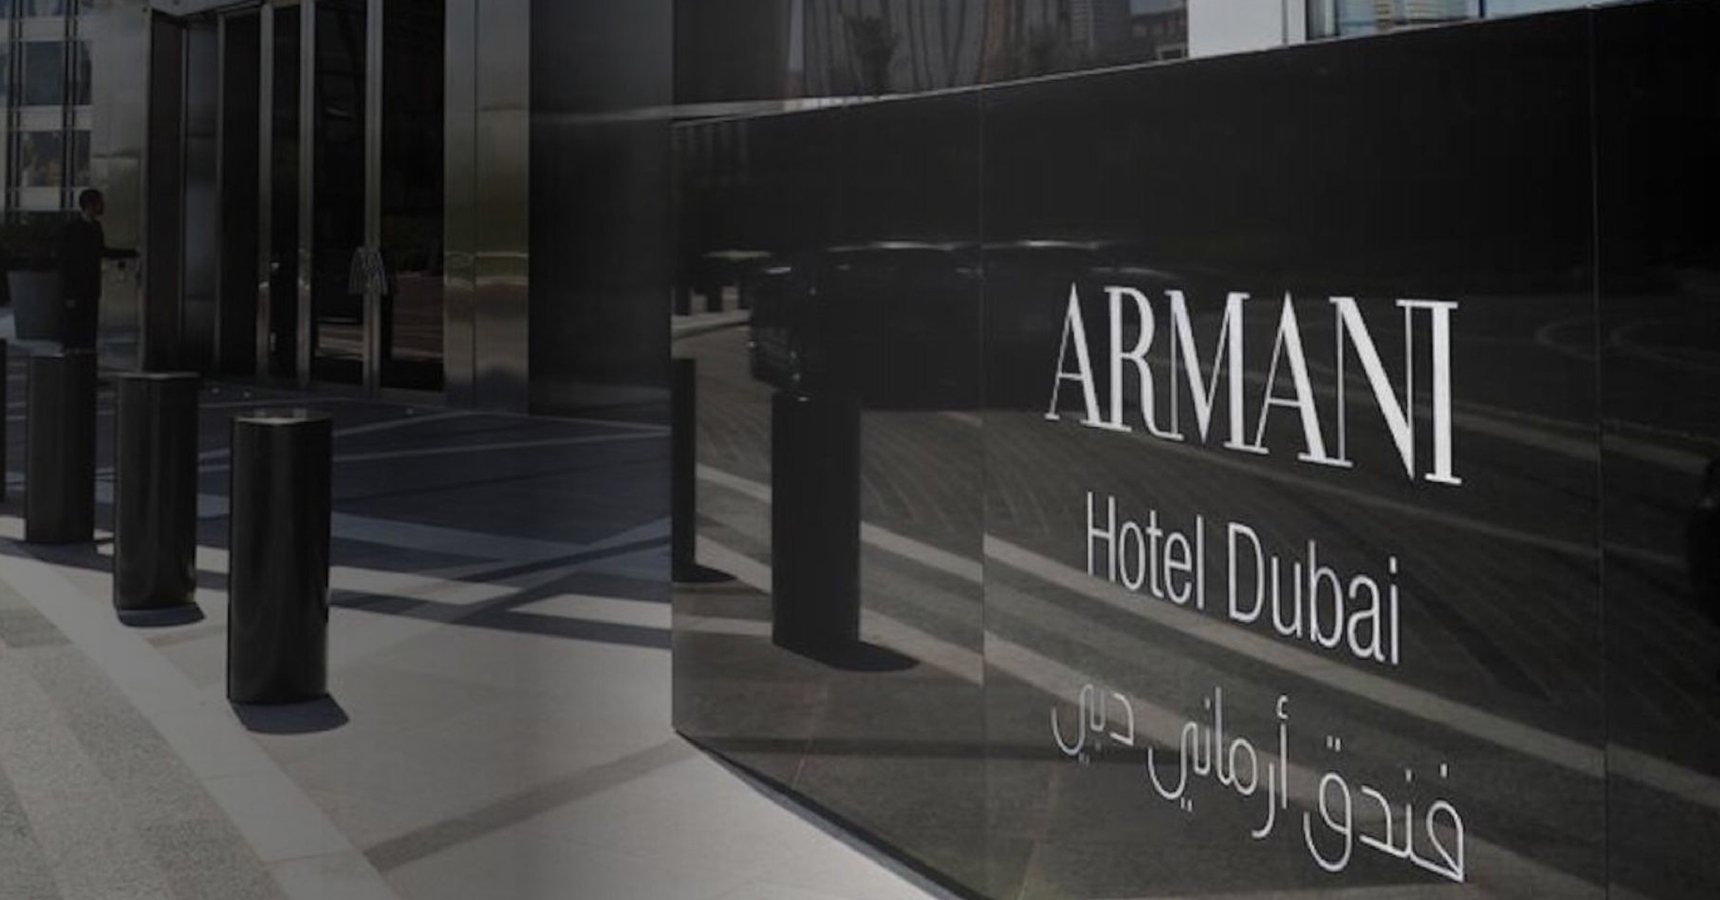 Our success with Armani Hotel Dubai – Expanding their brand presence in digital China